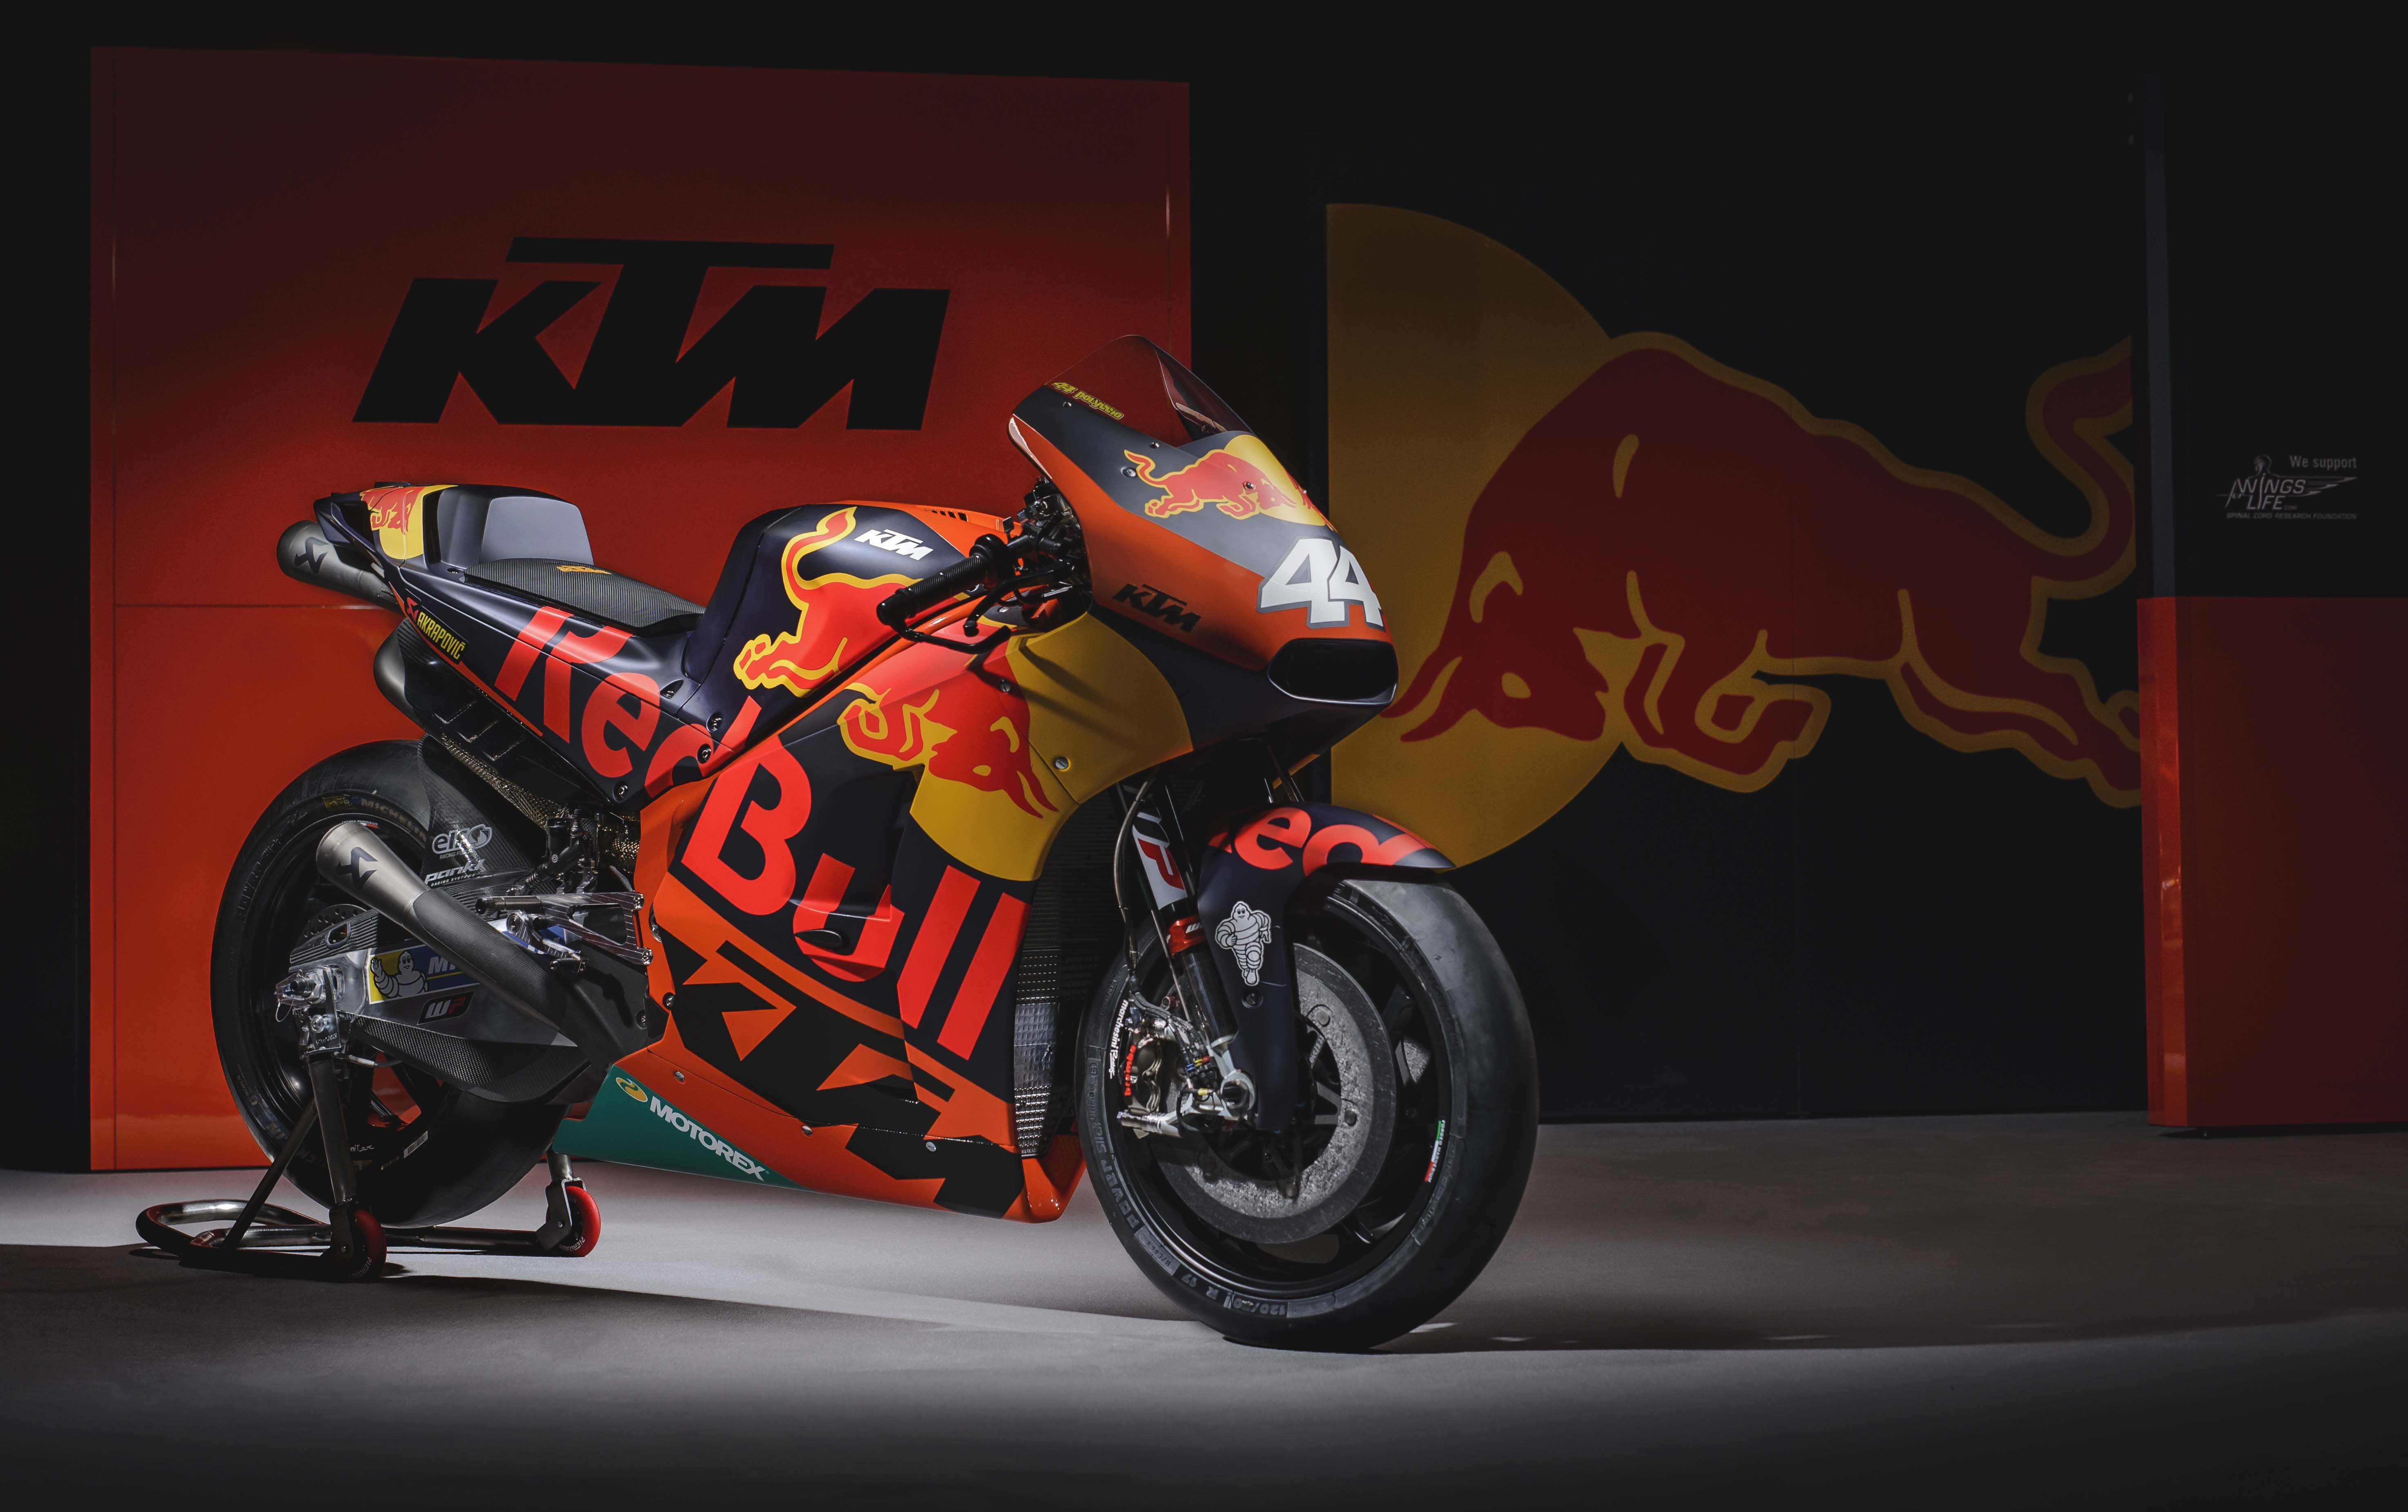 Ktm Rc16 Motogp Bike Hd Bikes 4k Wallpapers Images Backgrounds Photos And Pictures